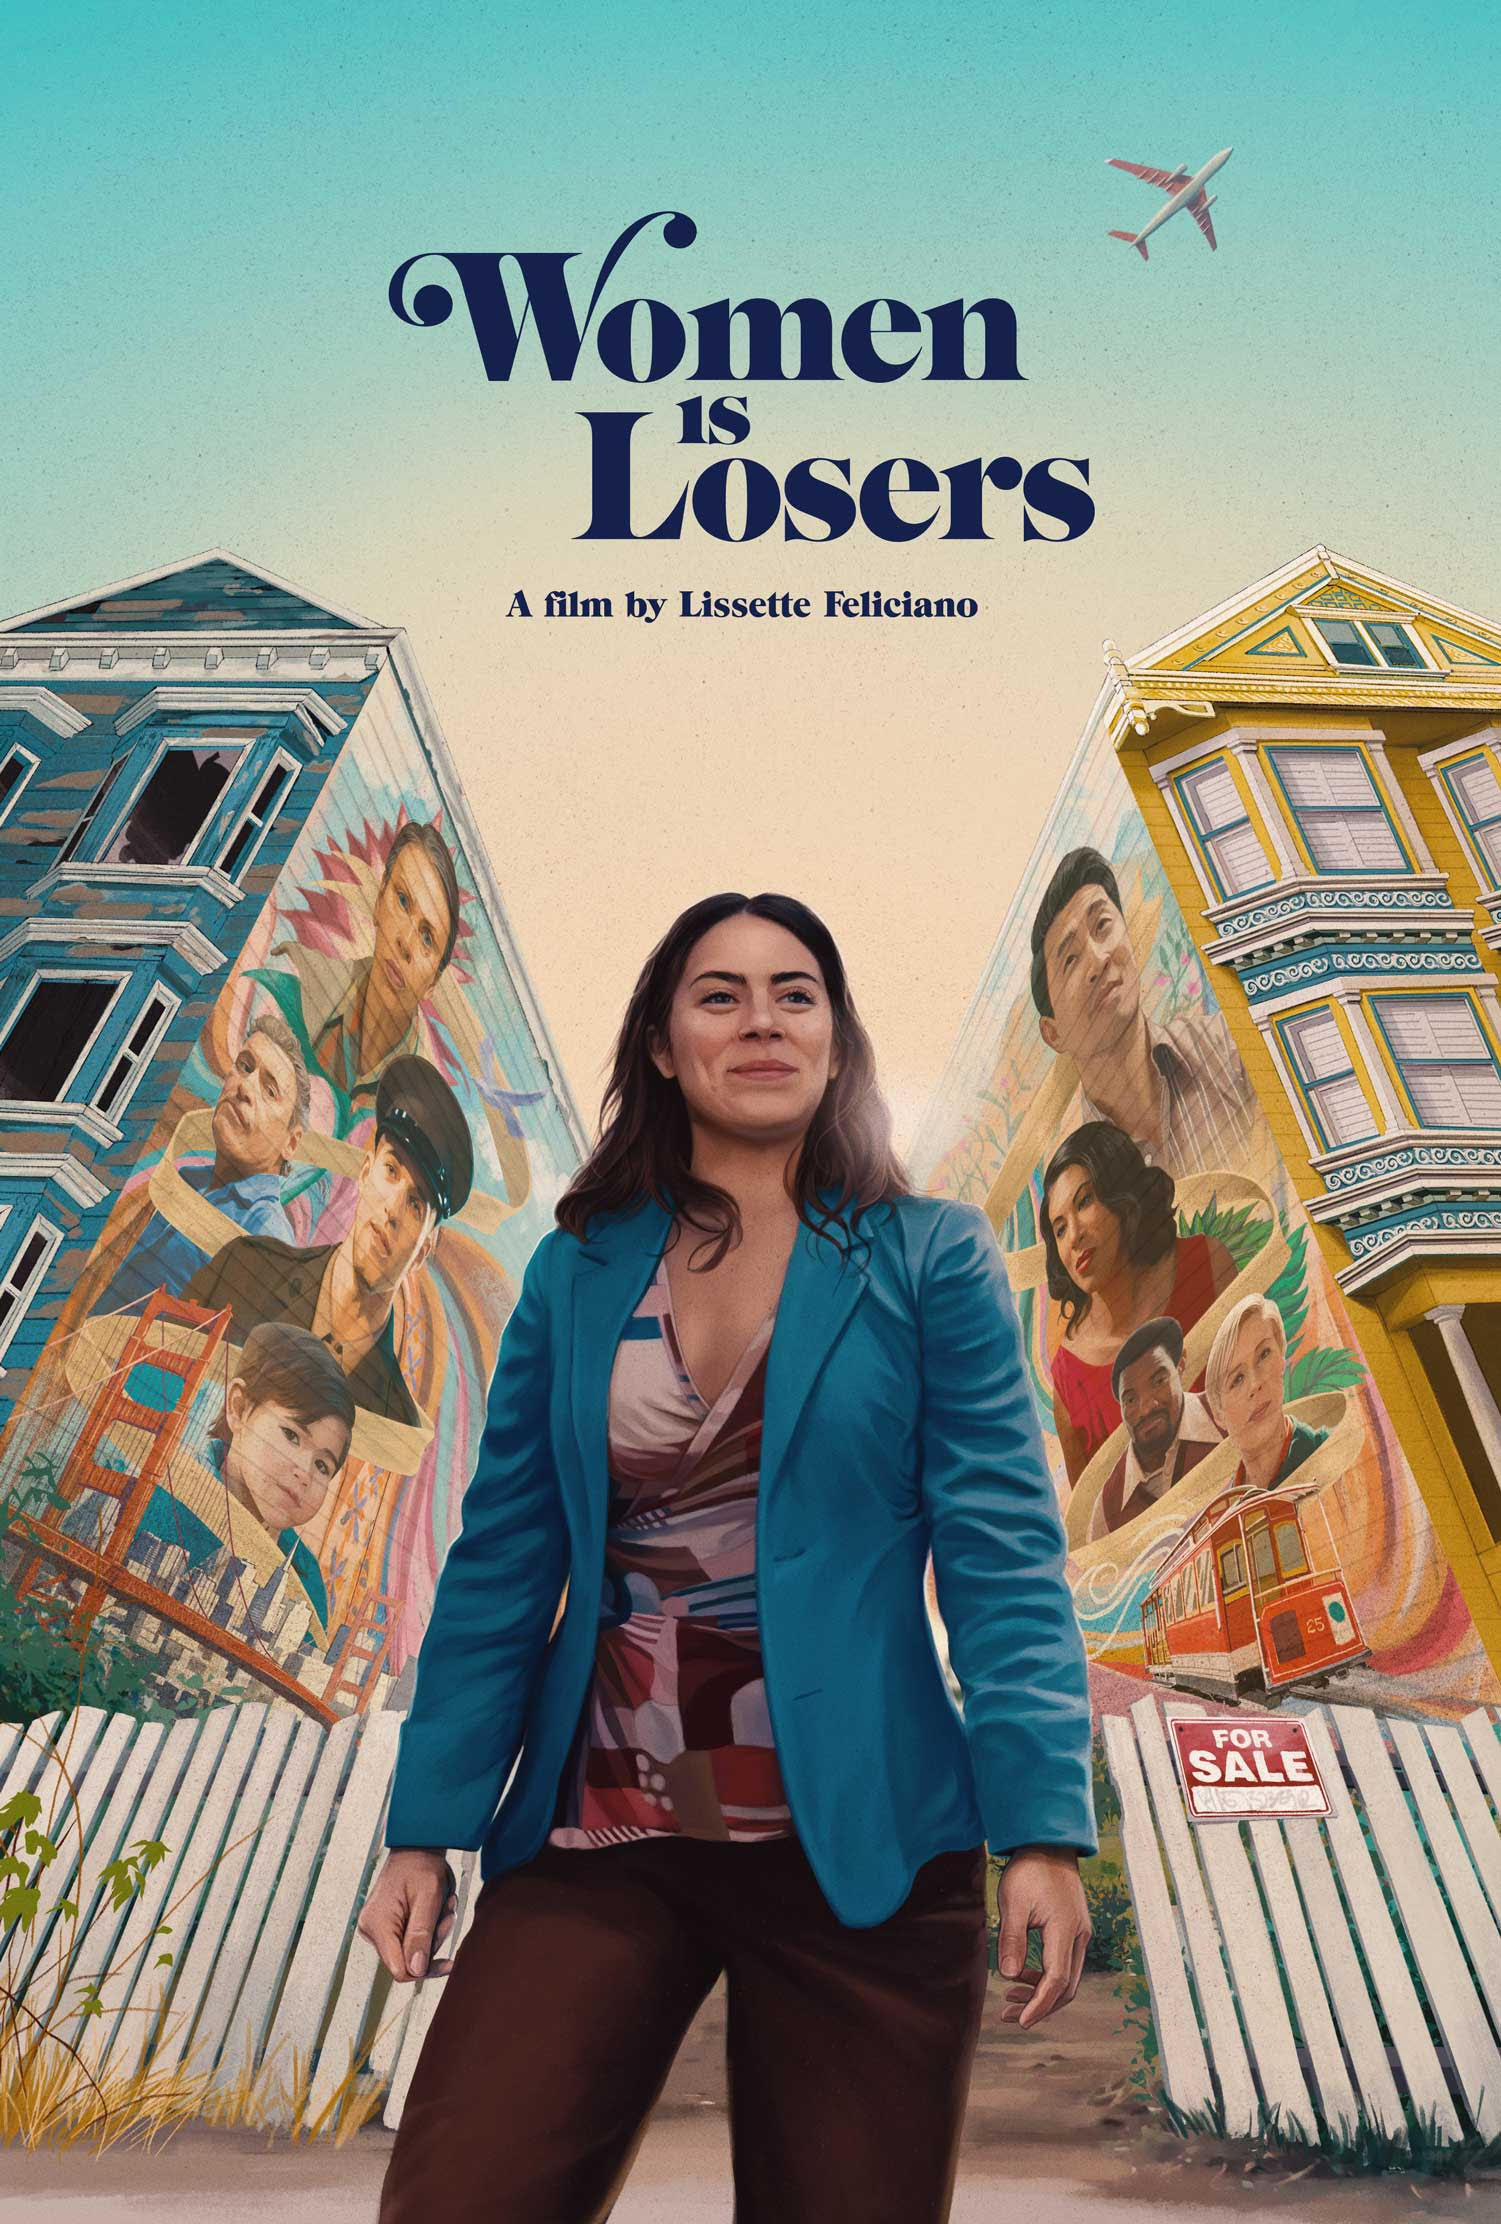 Women is Losers_Poster Competition Submission